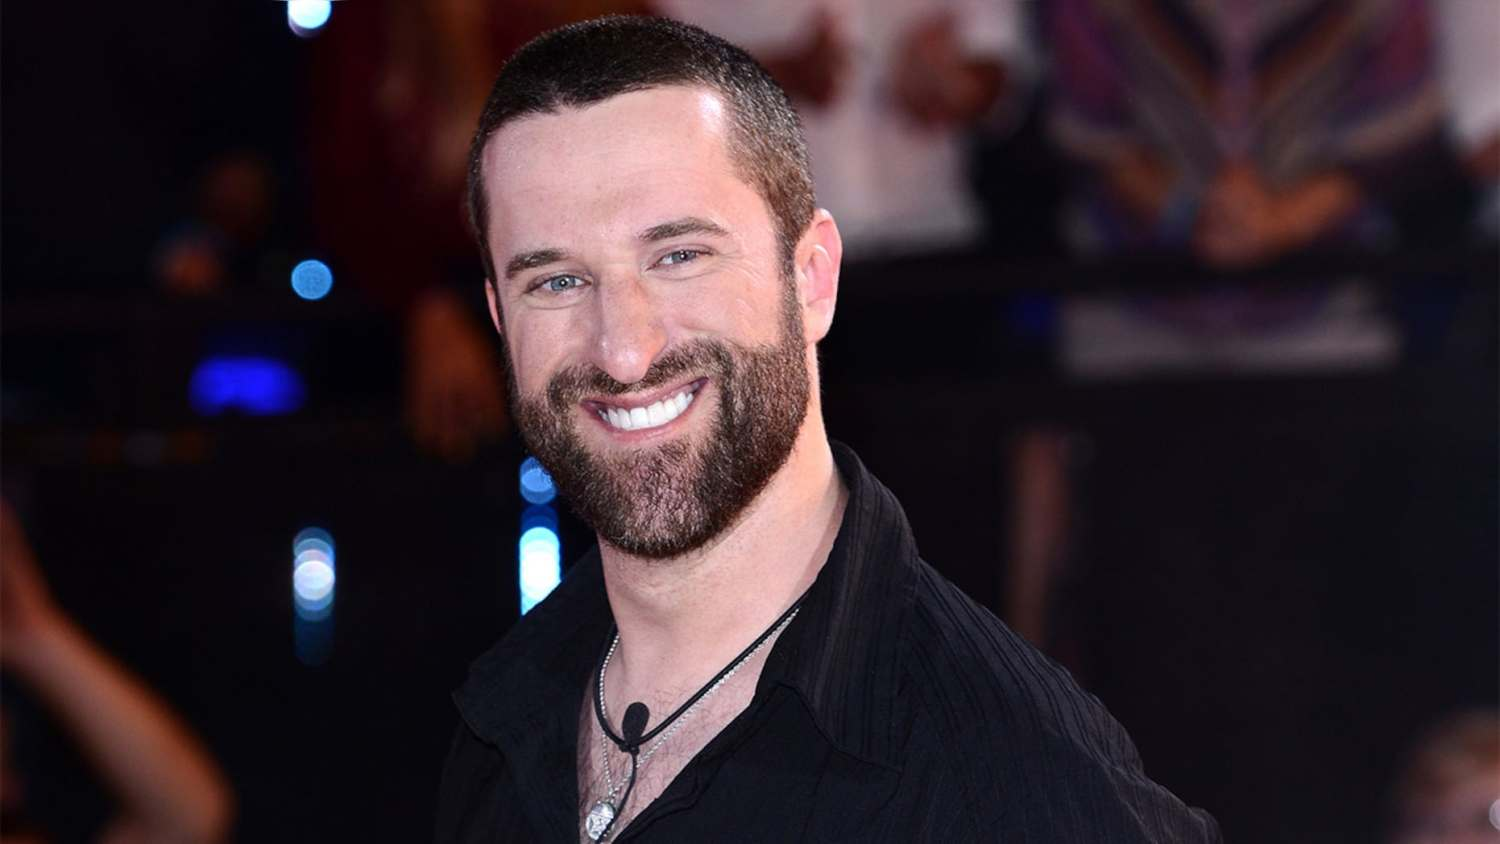 'saved by the bell' star dustin diamond dead at 44 after battle with stage 4 cancer